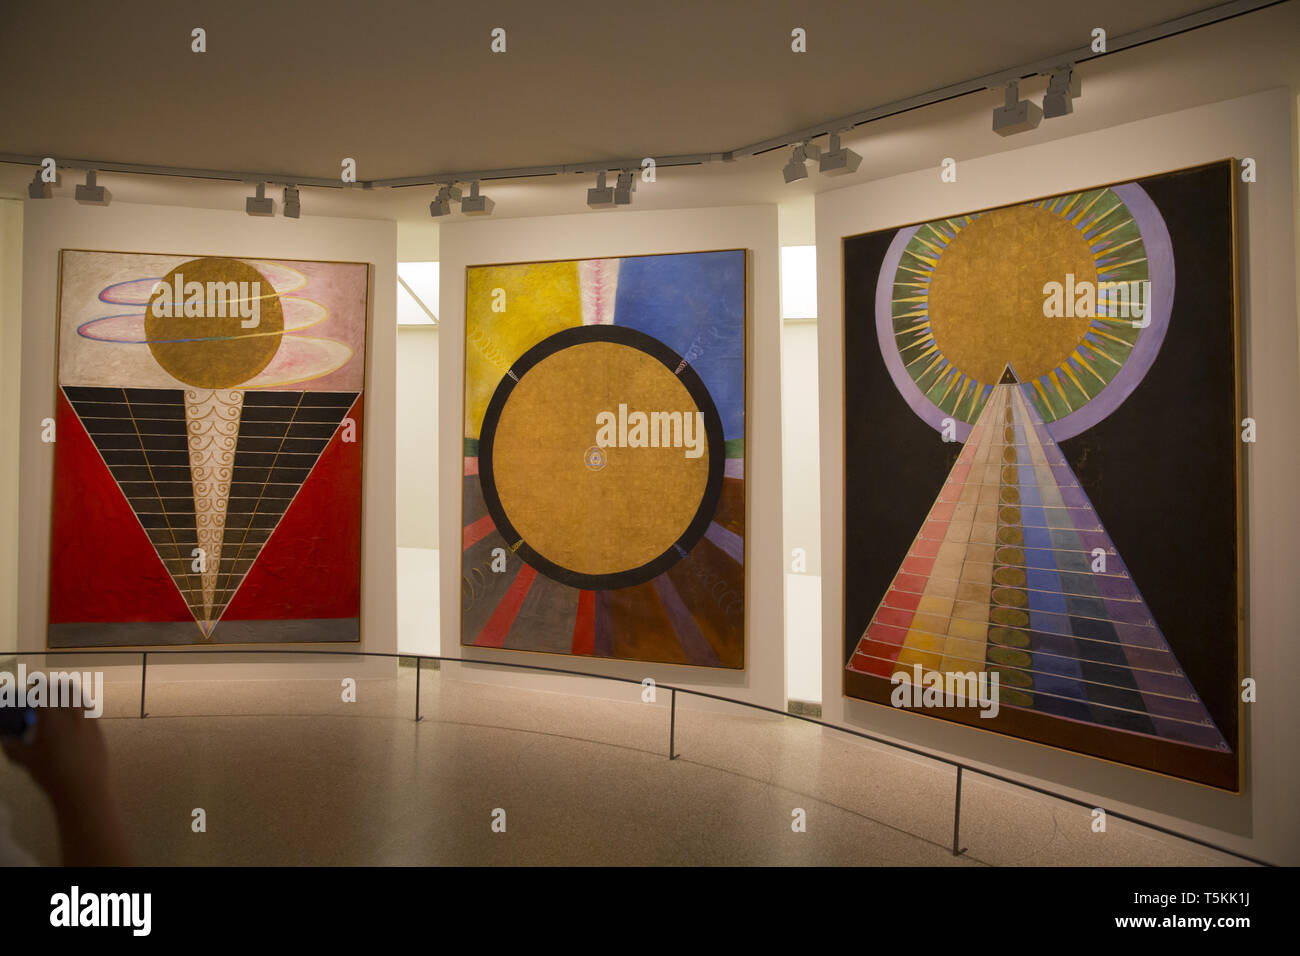 Museum goers at the Guggenheim Museum in New York City view the Hilma af Klint exhibition the most popular show ever at the museum. - Stock Image